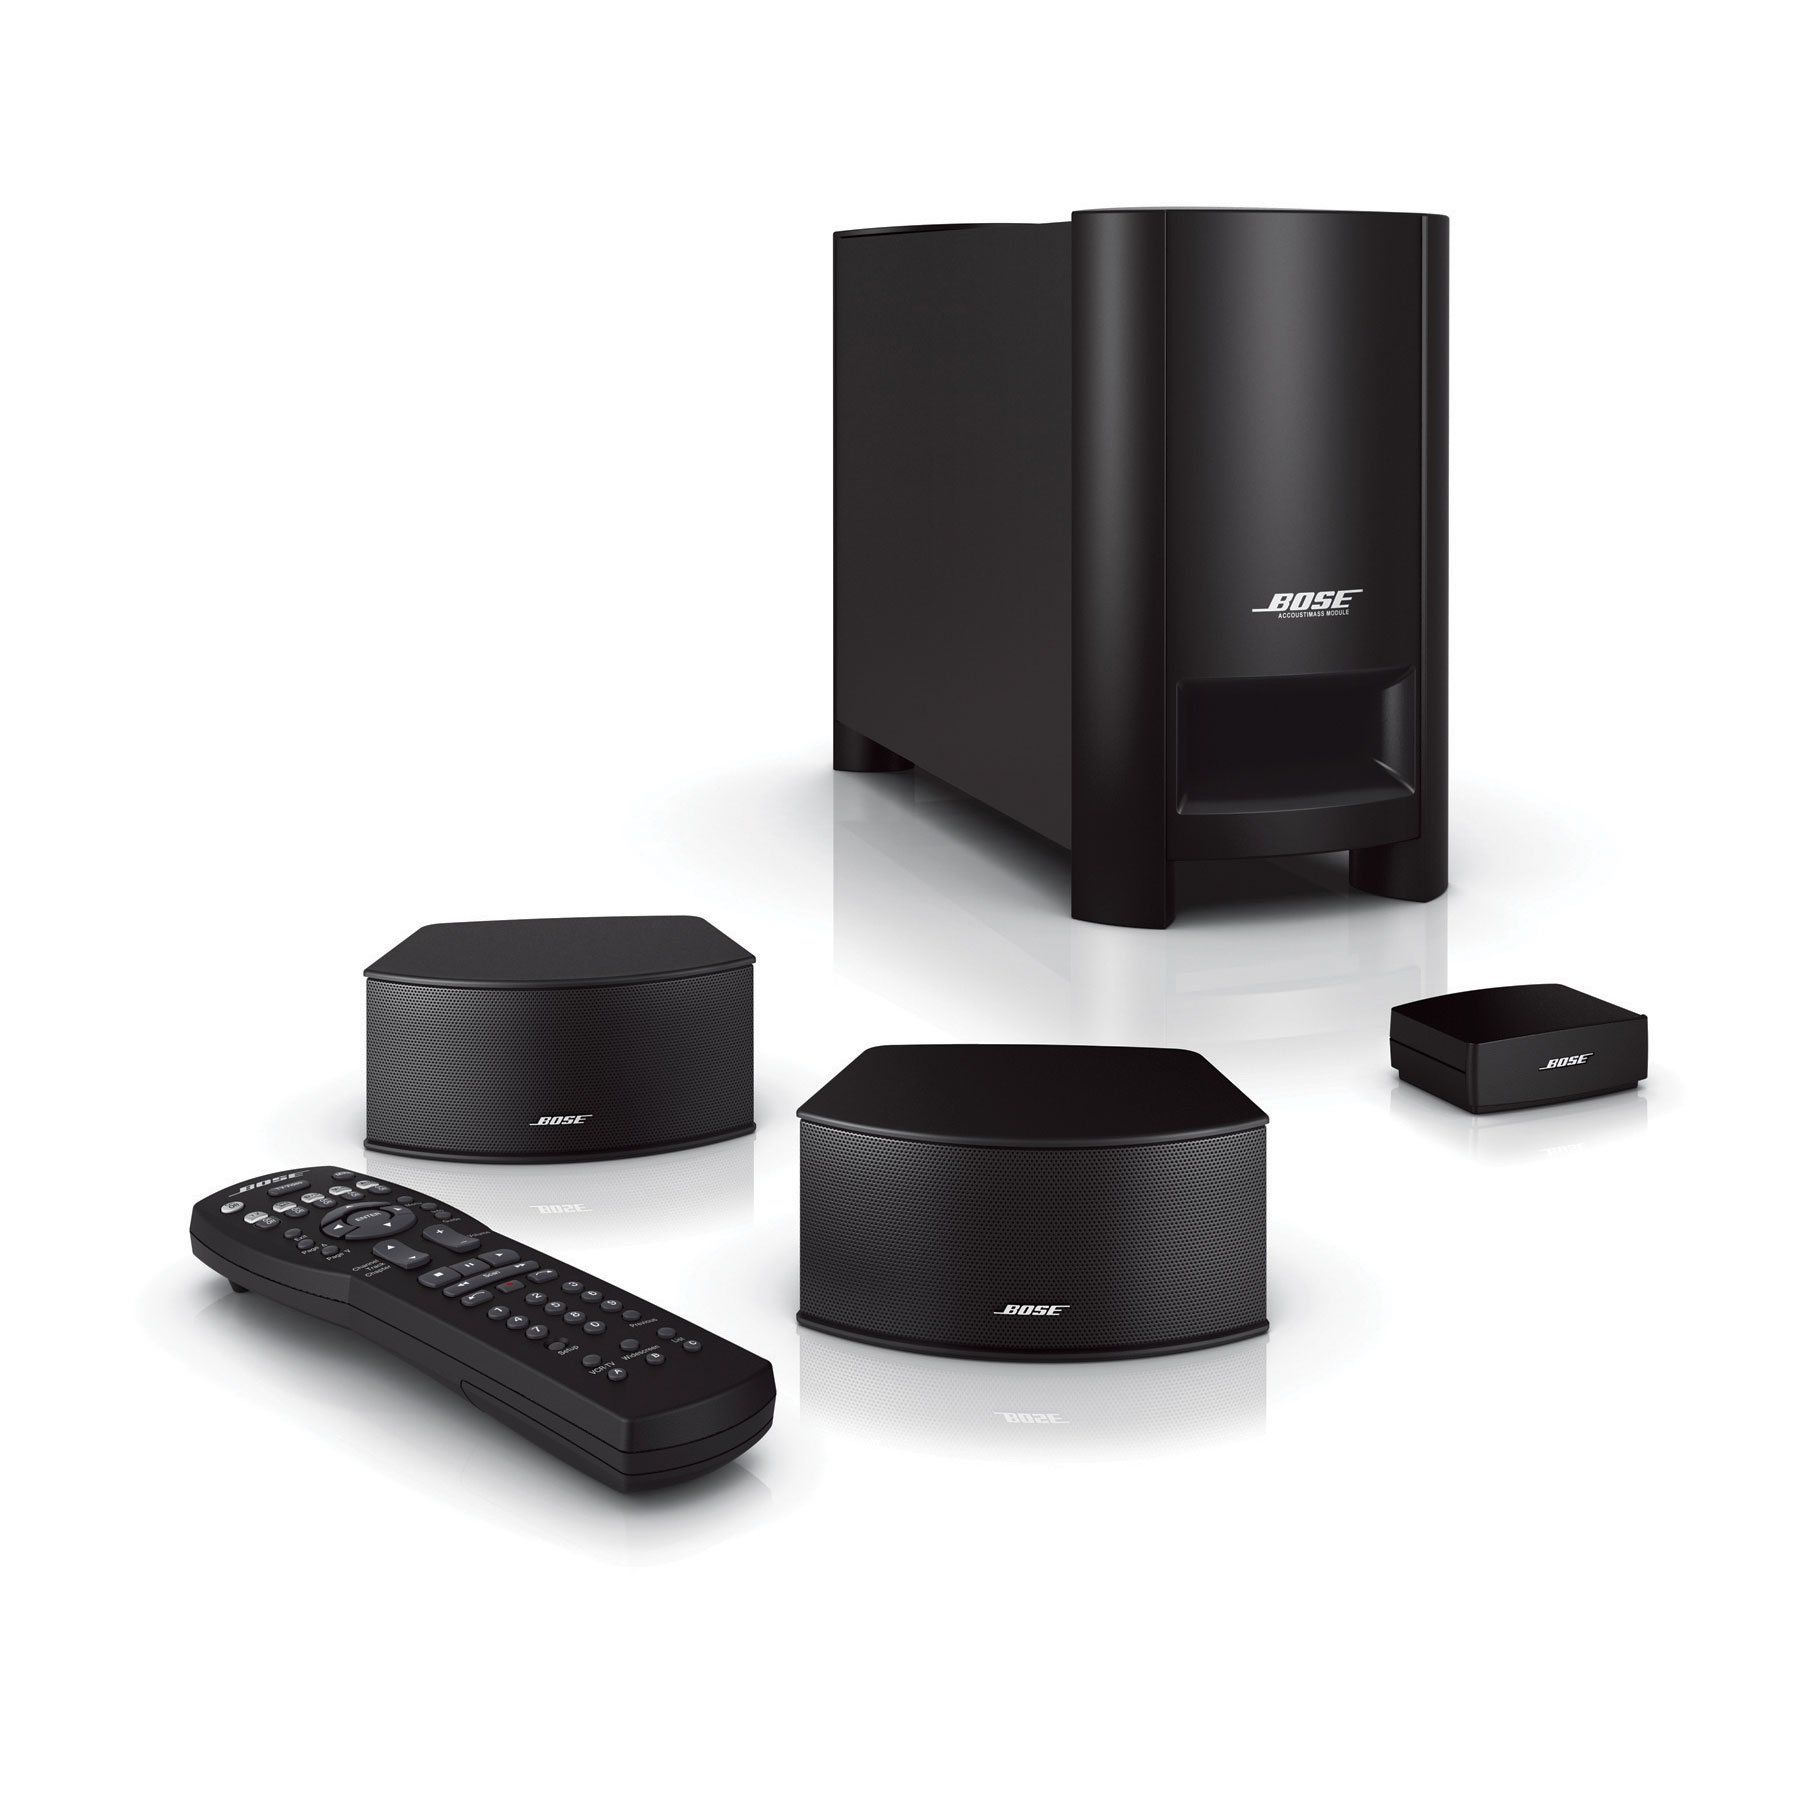 Bose CineMate GS Series II Home Theater Speaker System